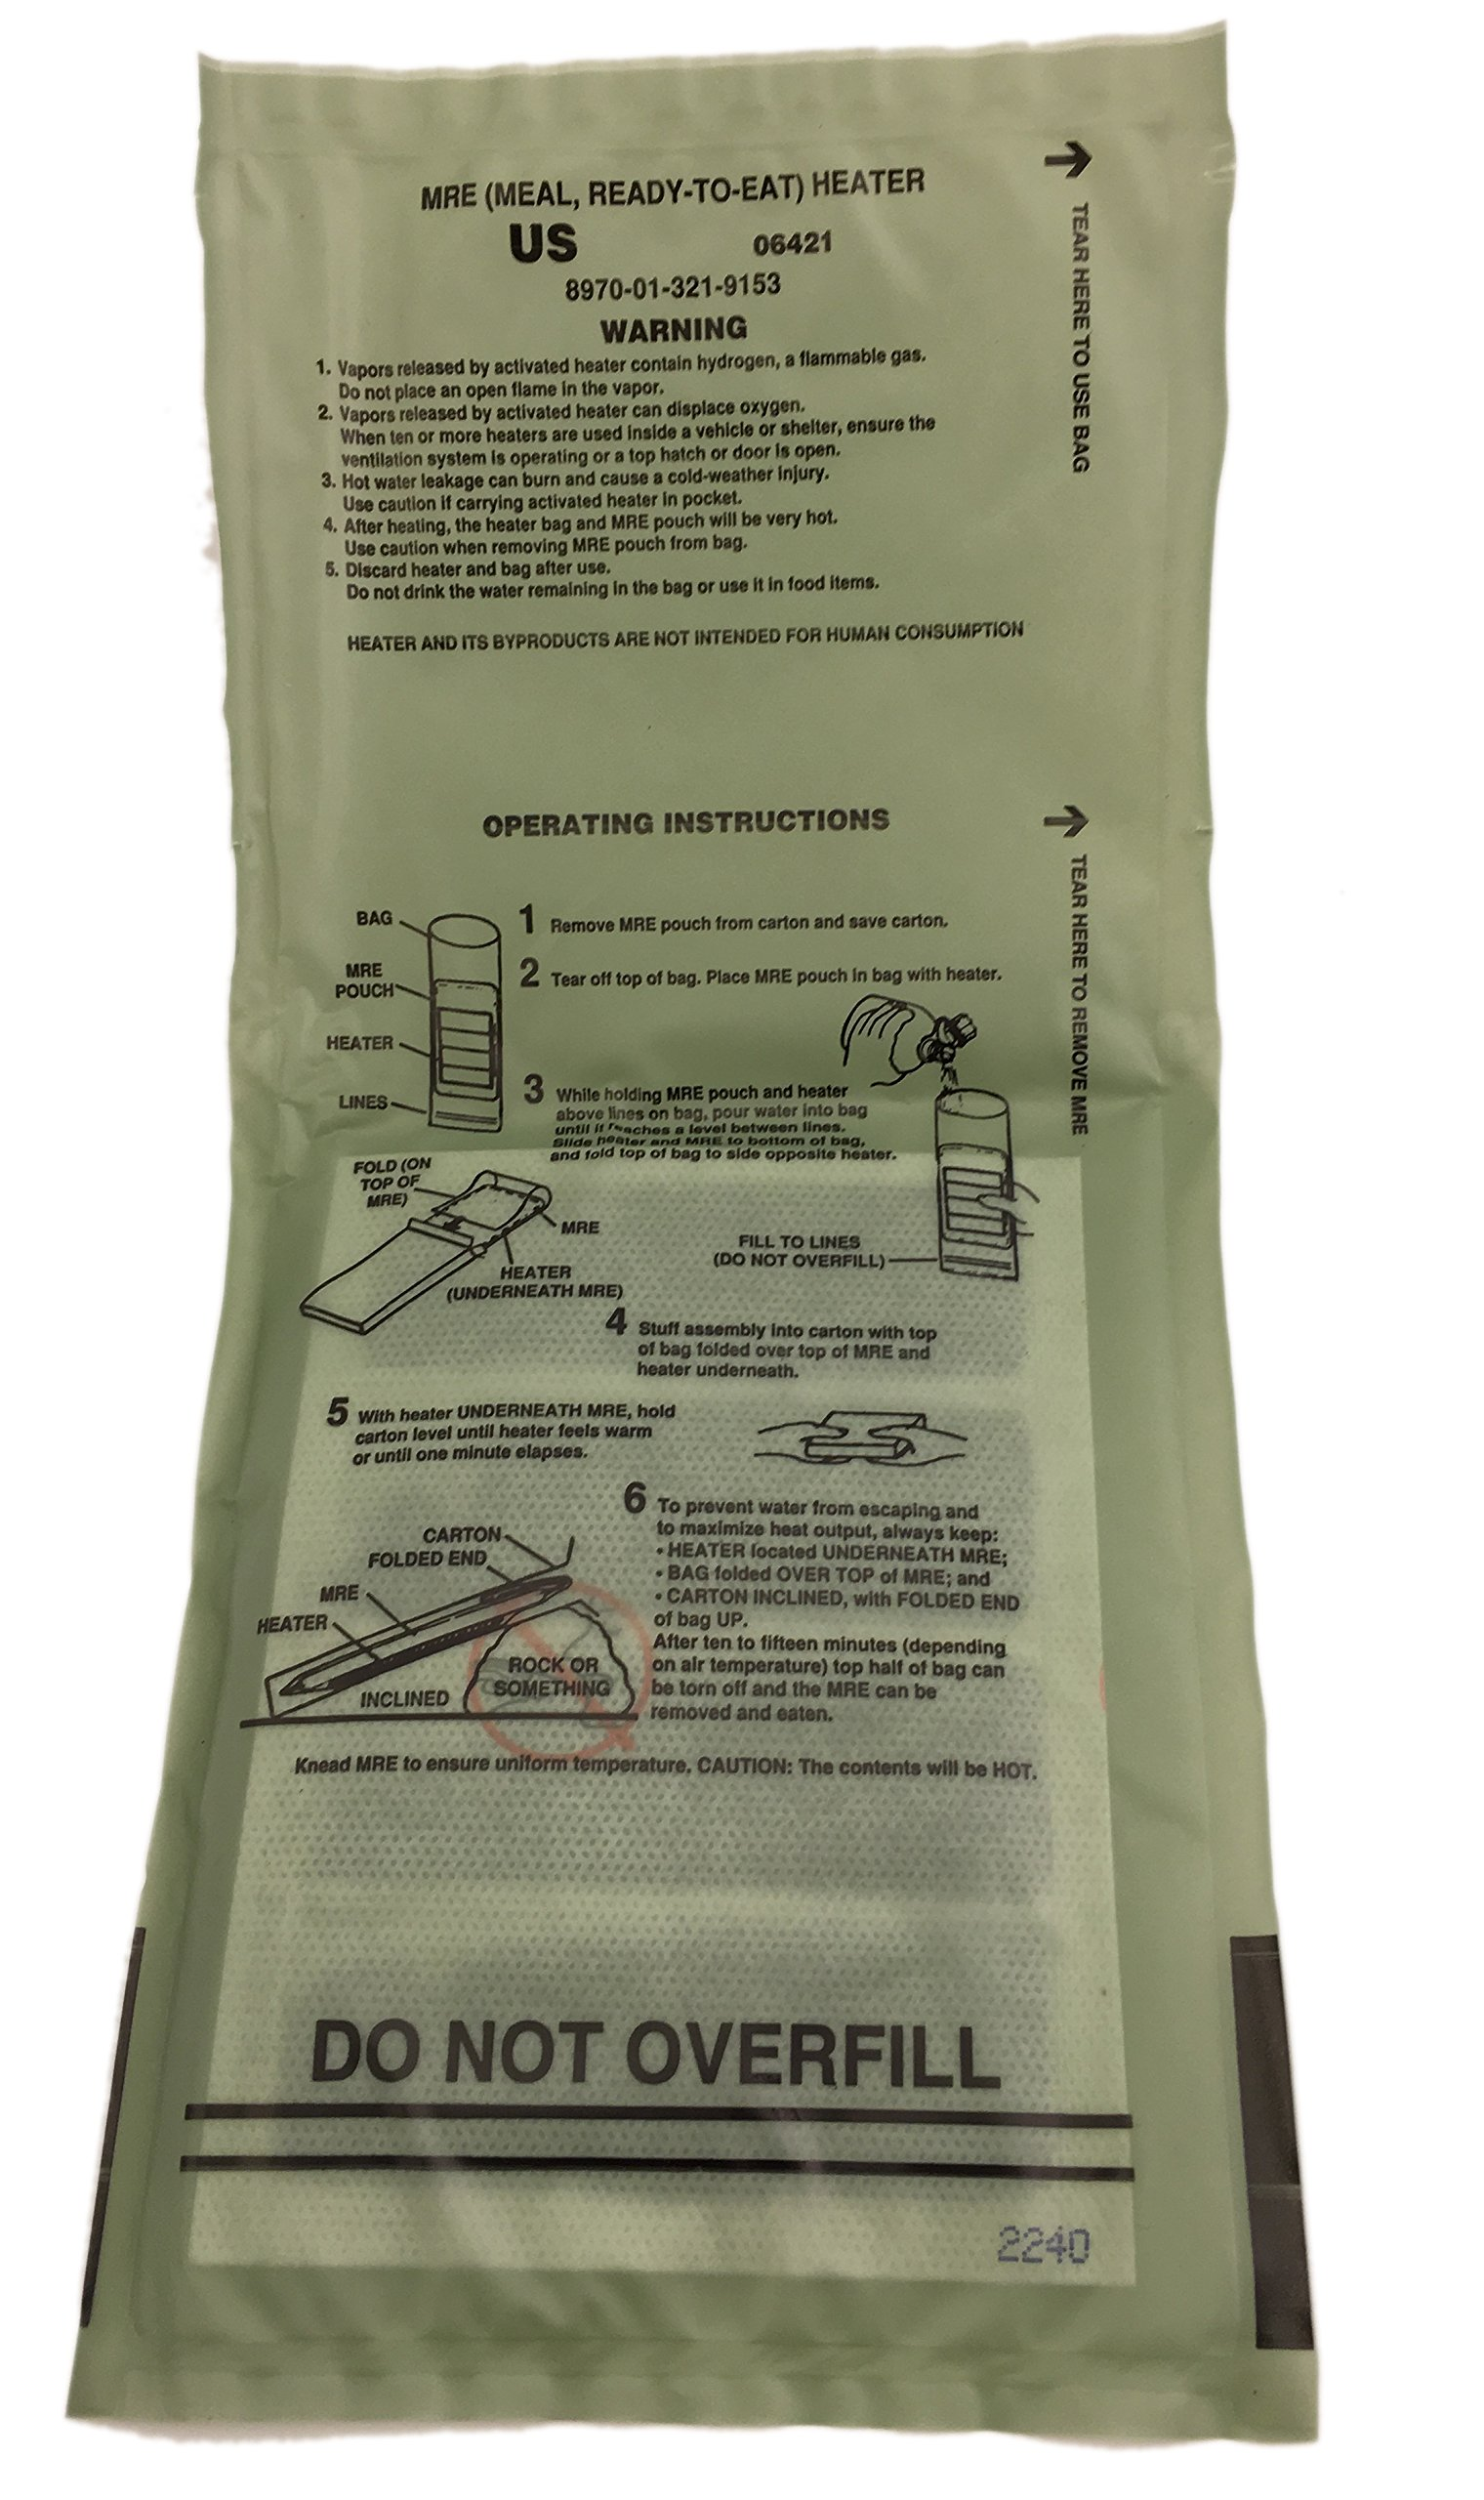 Pack of 10 SOPAKCO Sure-Pak MRE Reduced Sodium Emergency Ration Meals - Ready to Eat Variety Factory Sealed by Sure-Pack (Image #5)